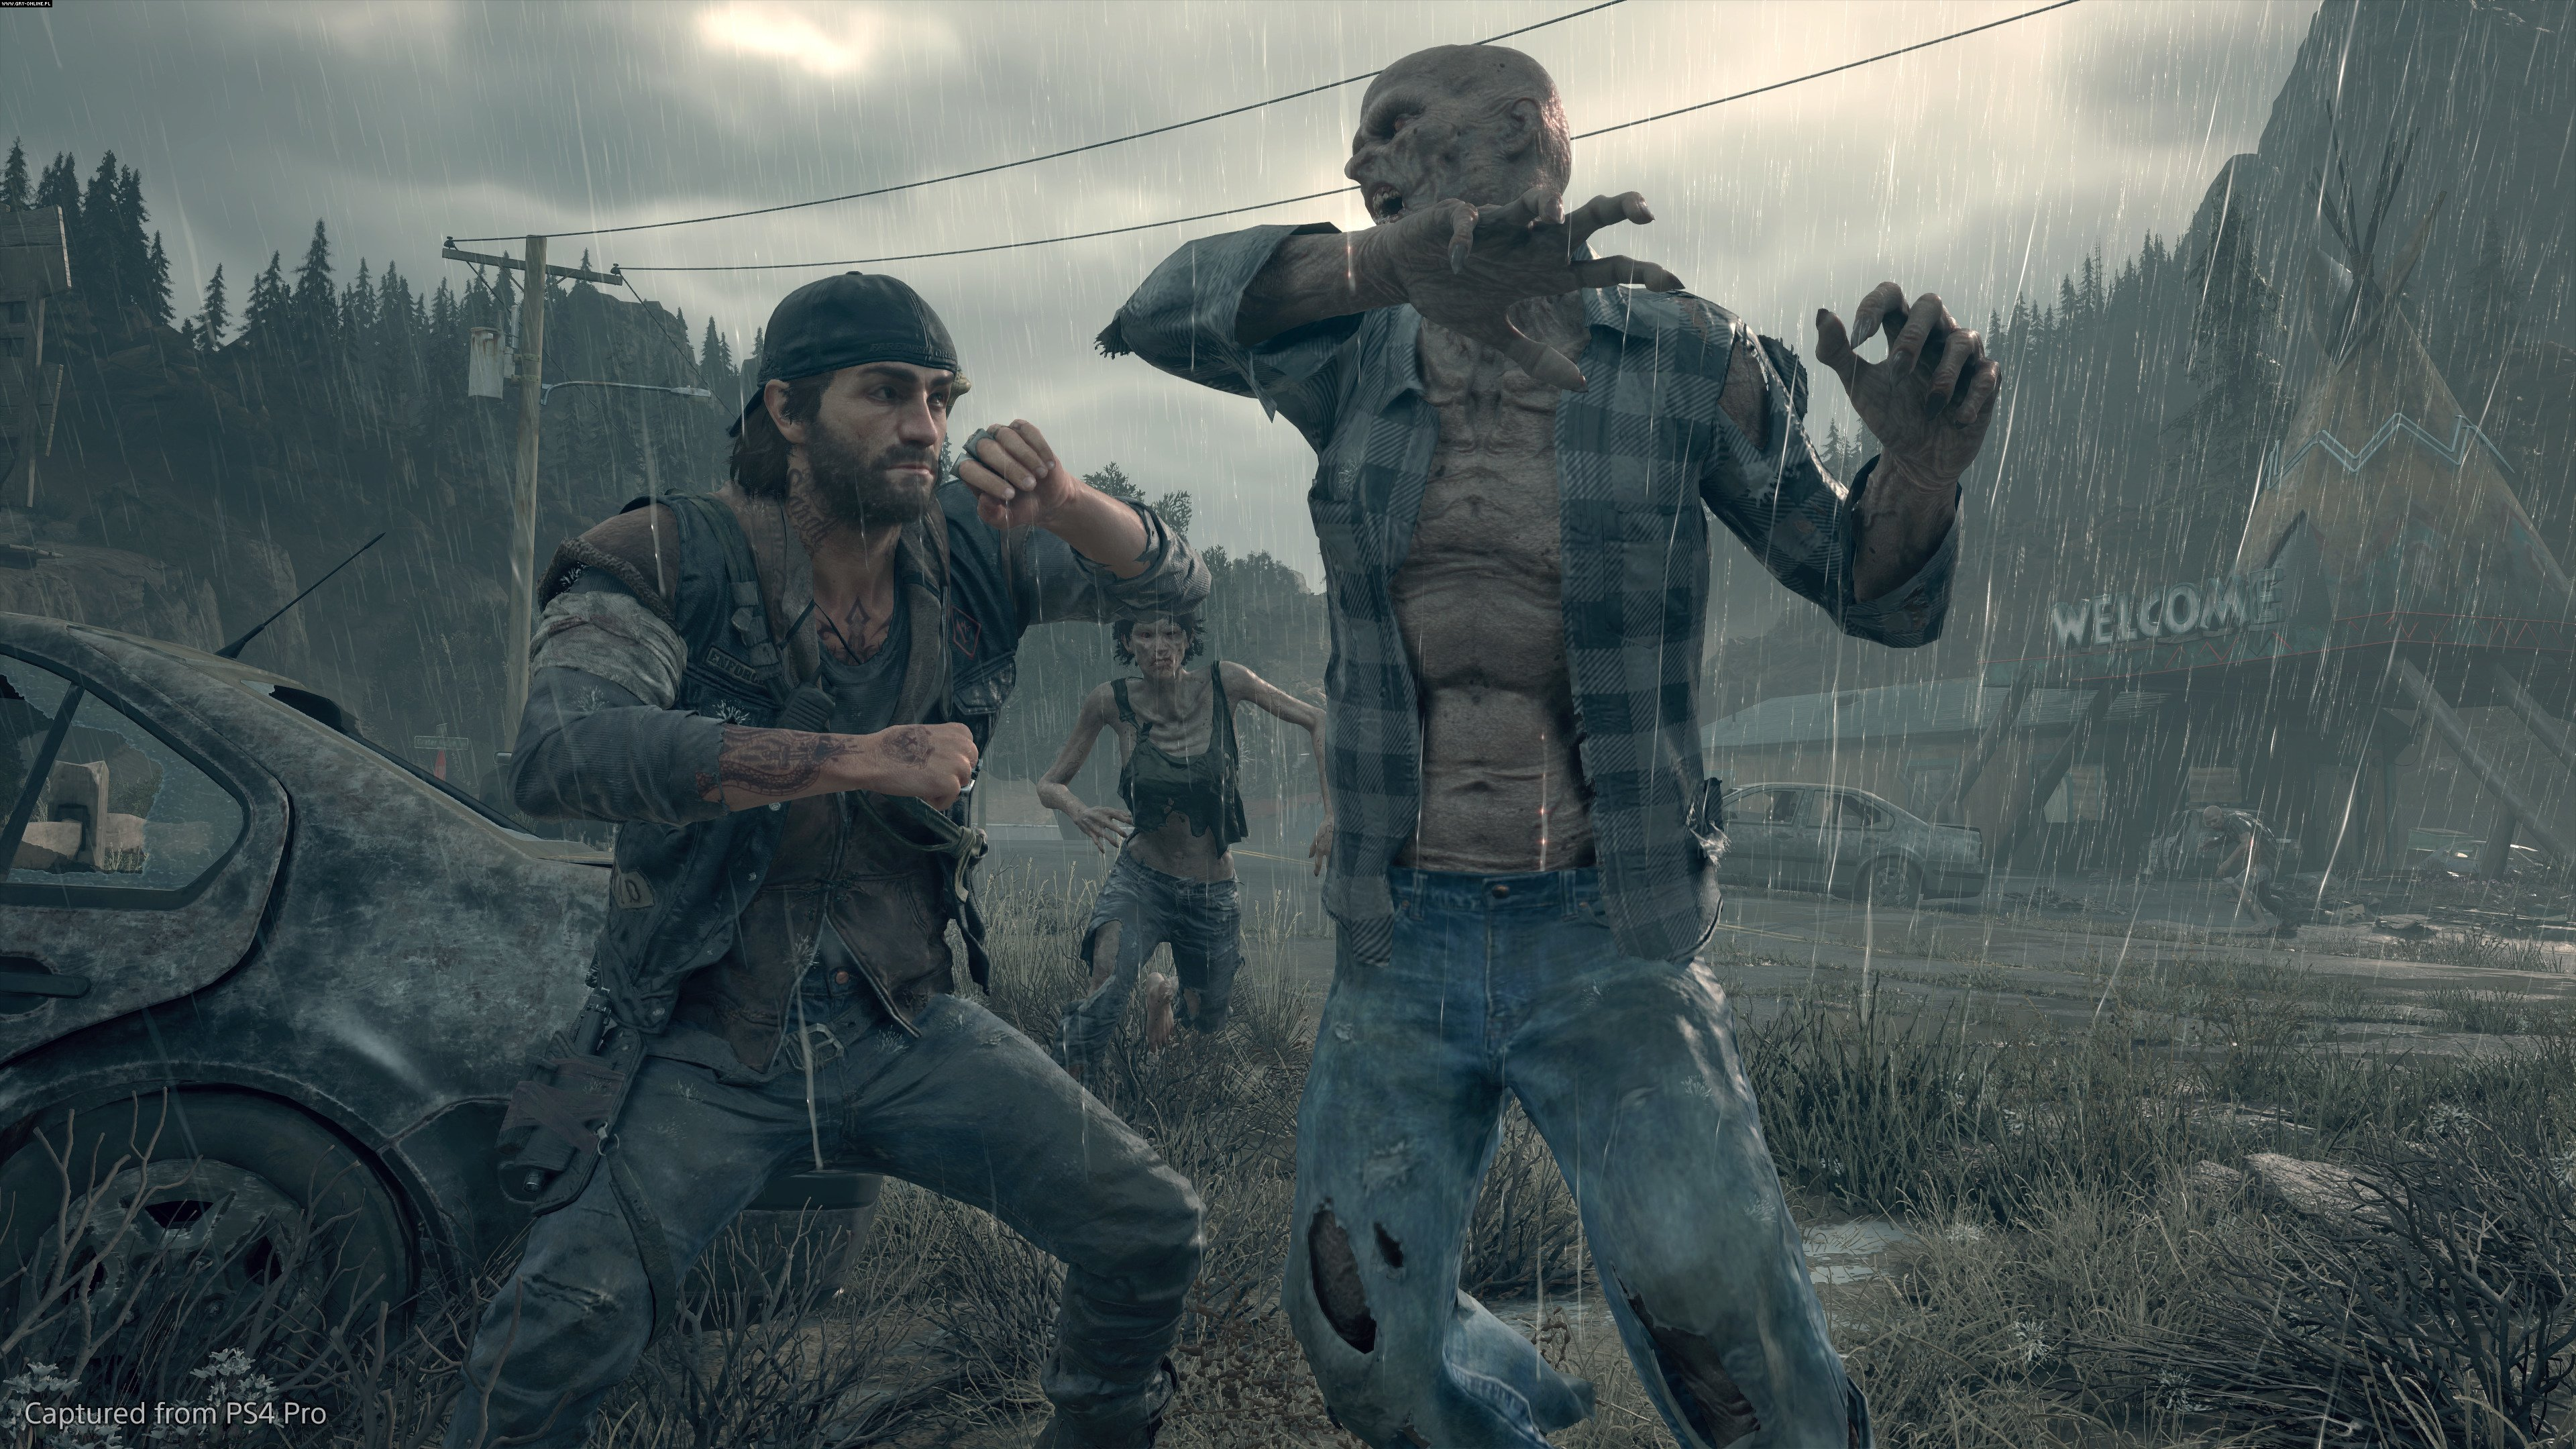 Days Gone PS4 Games Image 32/67, Bend Studio, Sony Interactive Entertainment